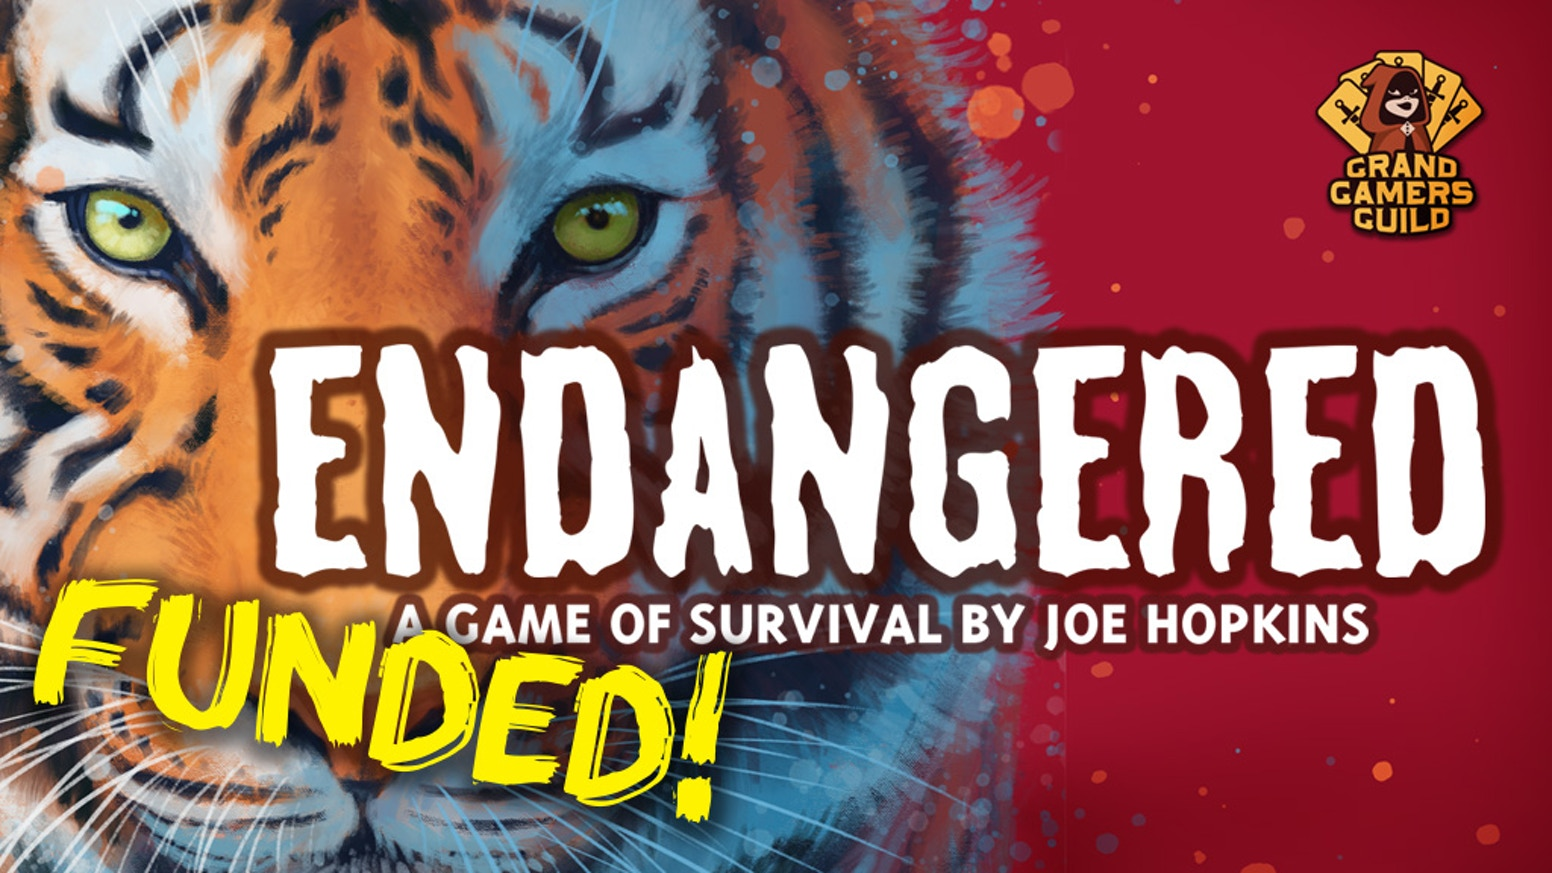 A game of survival by Joe Hopkins. Work together to save earth's endangered species.